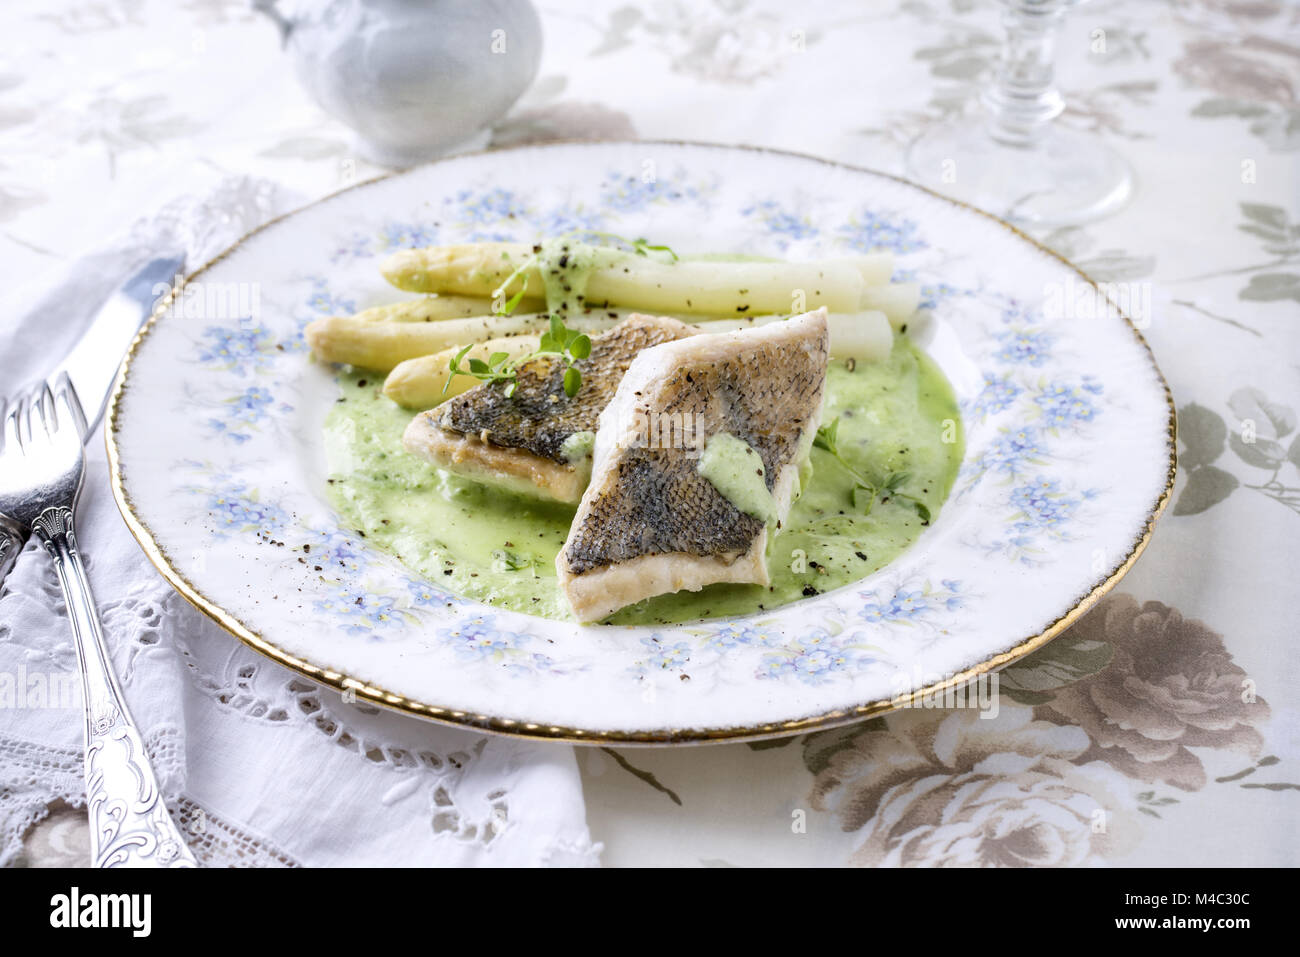 Zander Filet with White Asparagus on Plate - Stock Image